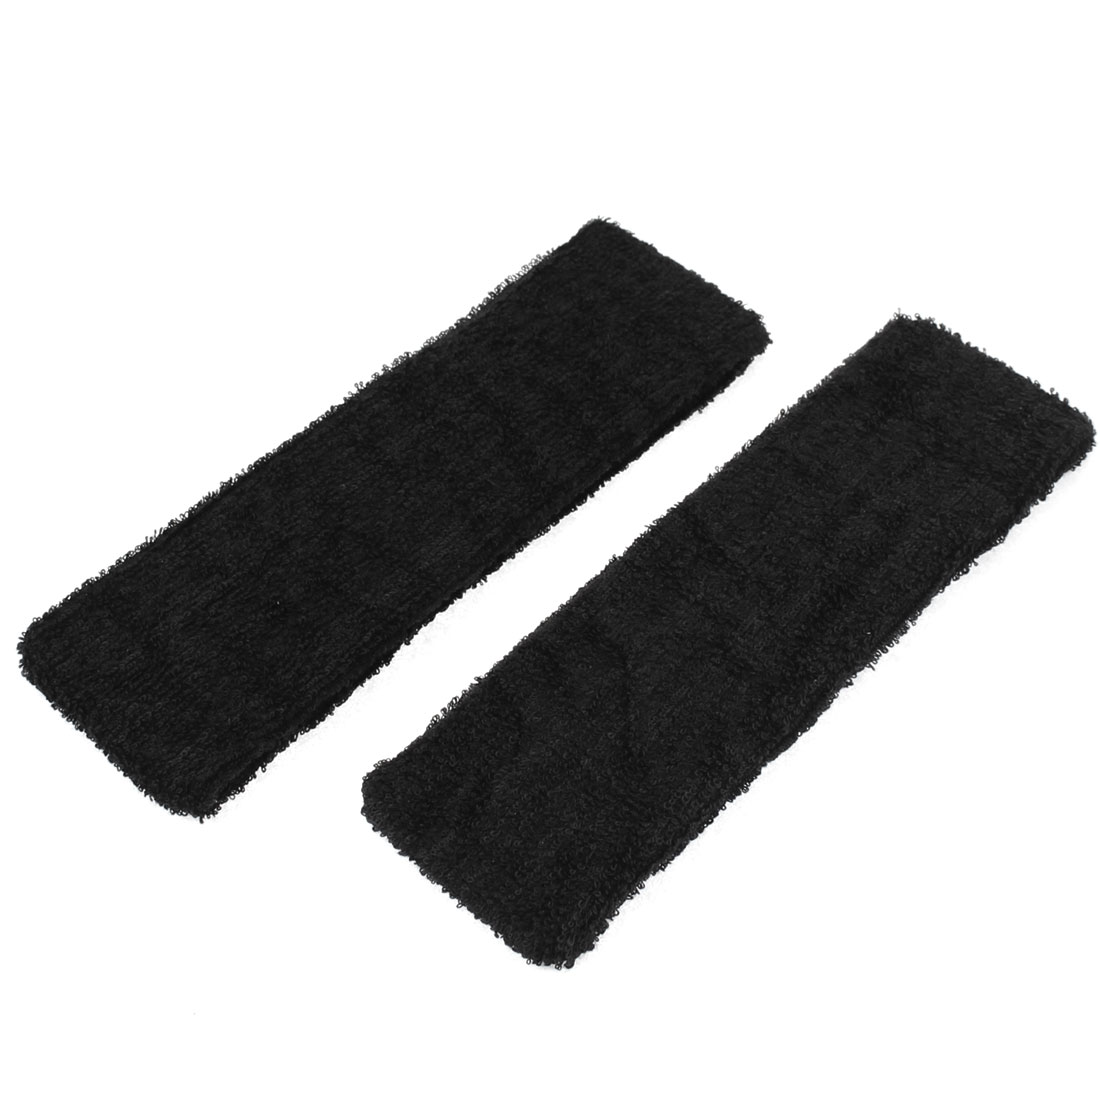 2 Pcs Black Terry Spandex Sports Basketball Elastic Hairband Headband Sweatband Head Sweat Band Brace